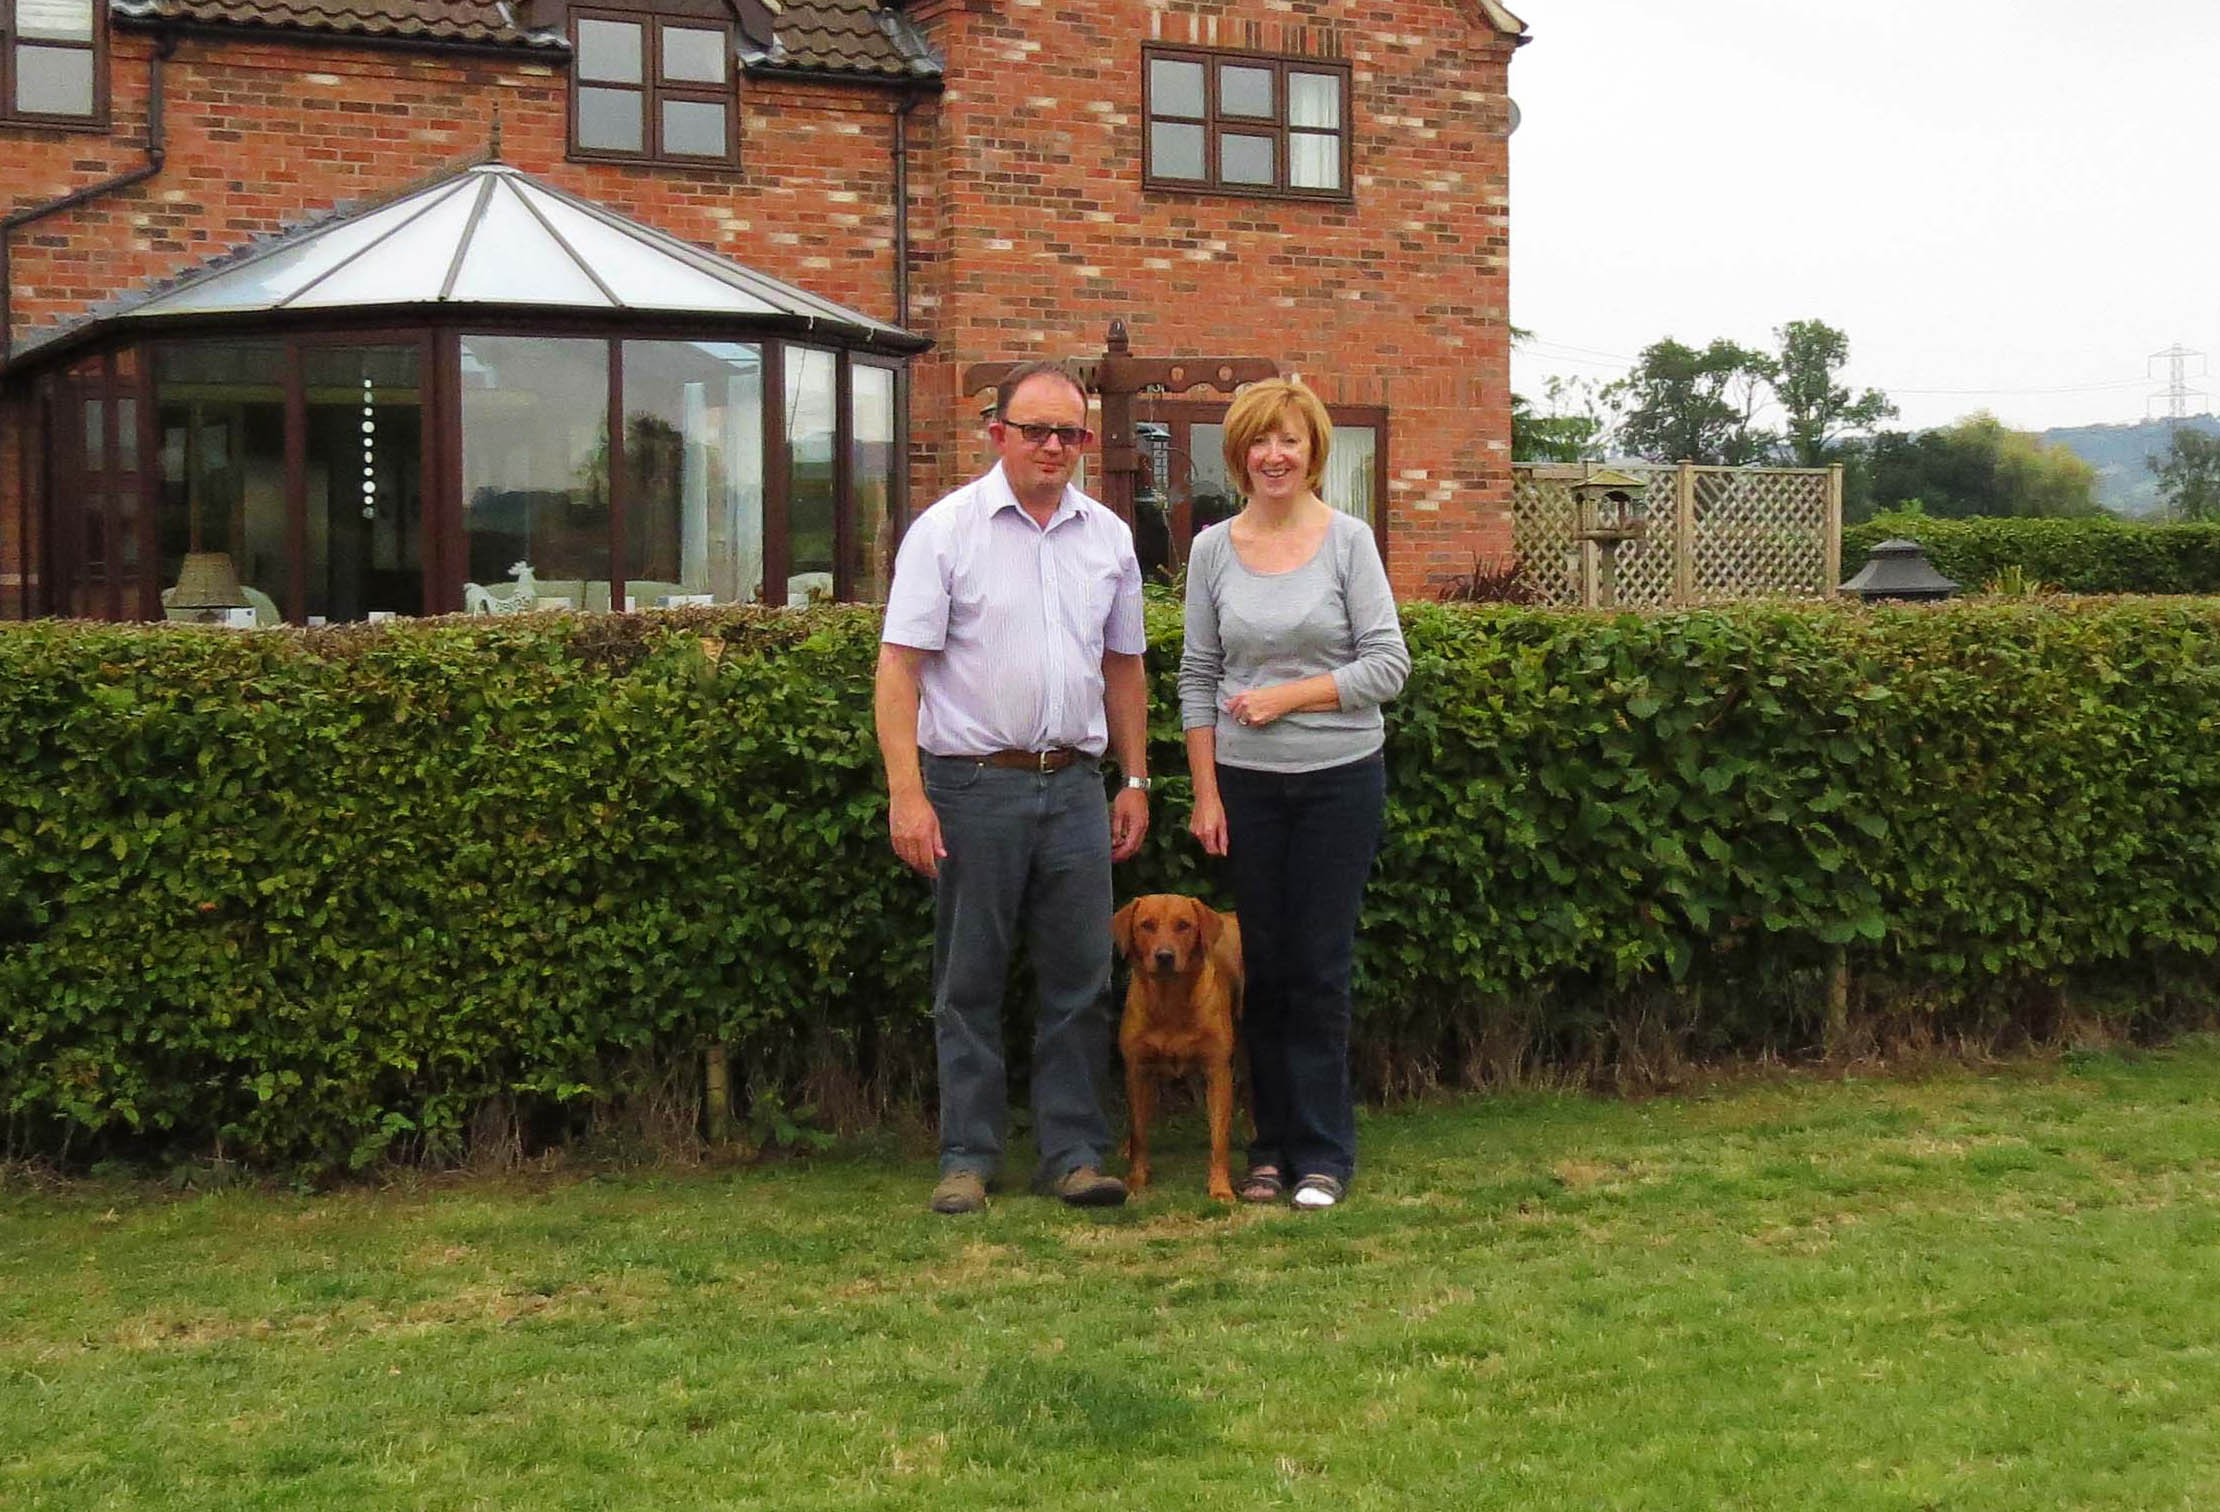 Andy Wiles, Hilary Wiles and Bracken the dog.